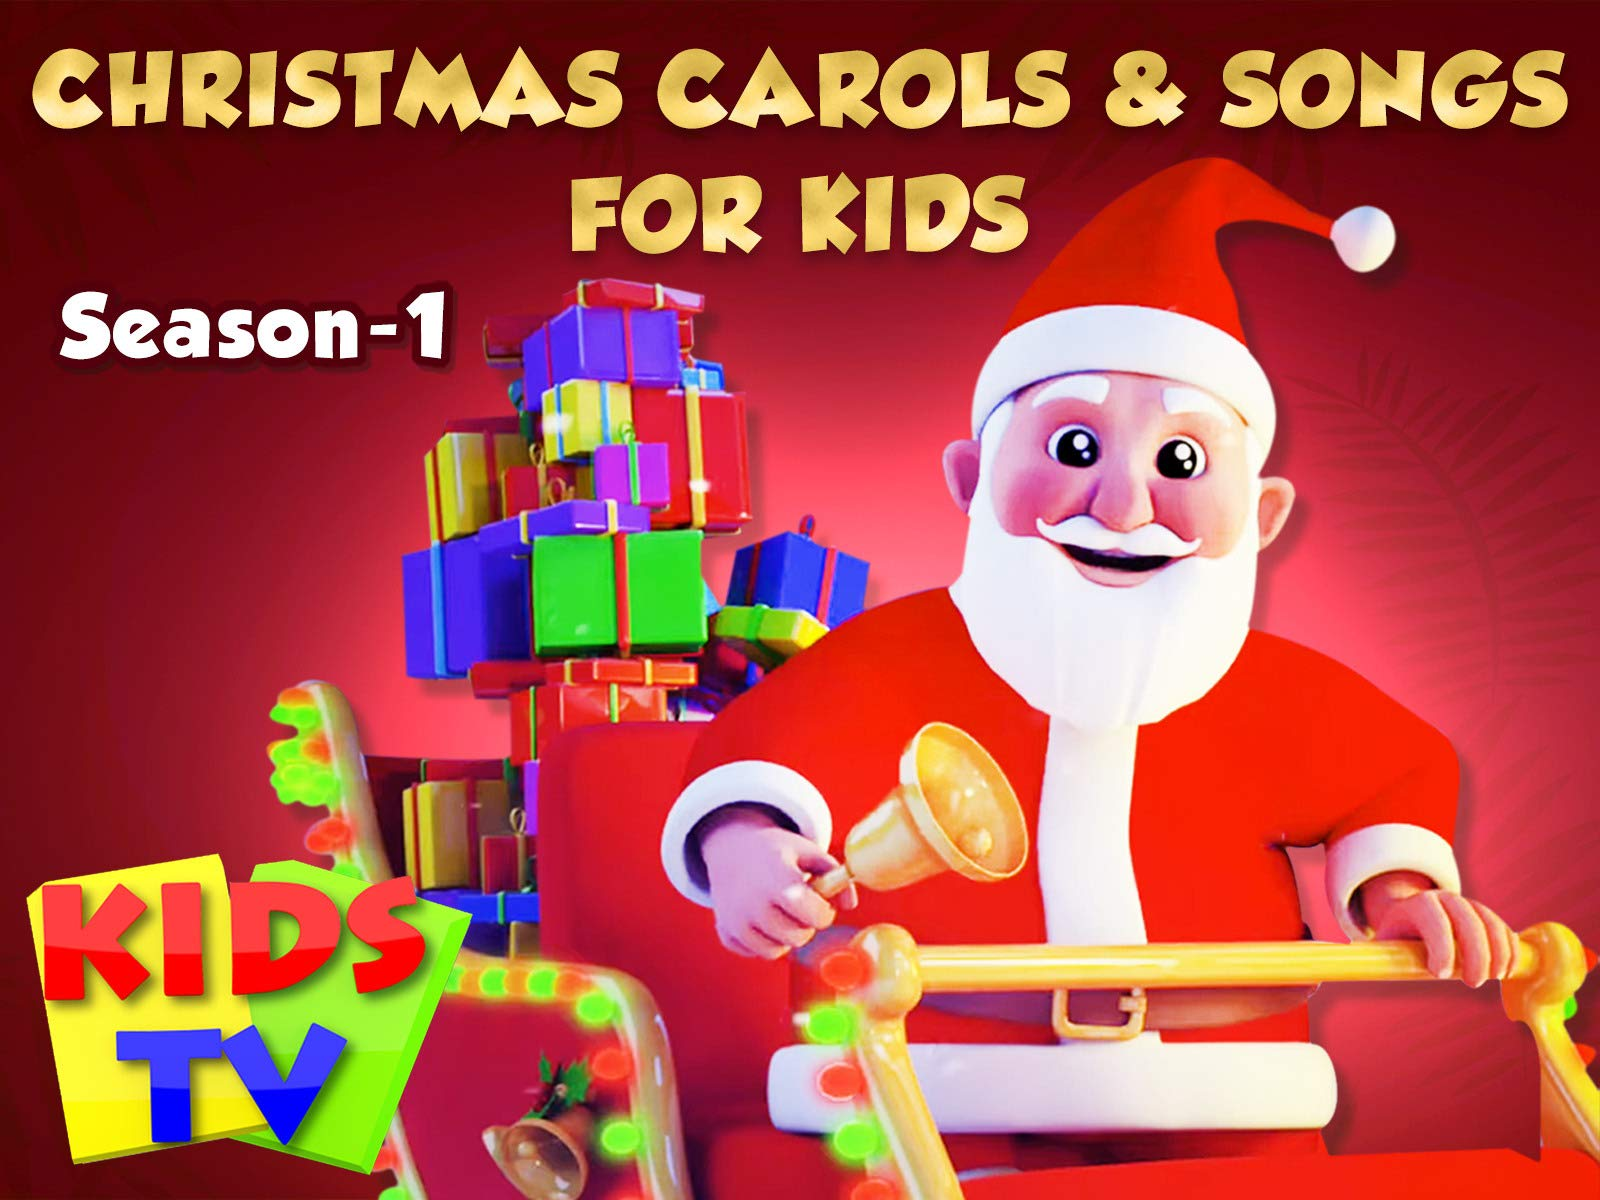 Christmas Carols & Songs for Kids - Kids Tv - Season 1